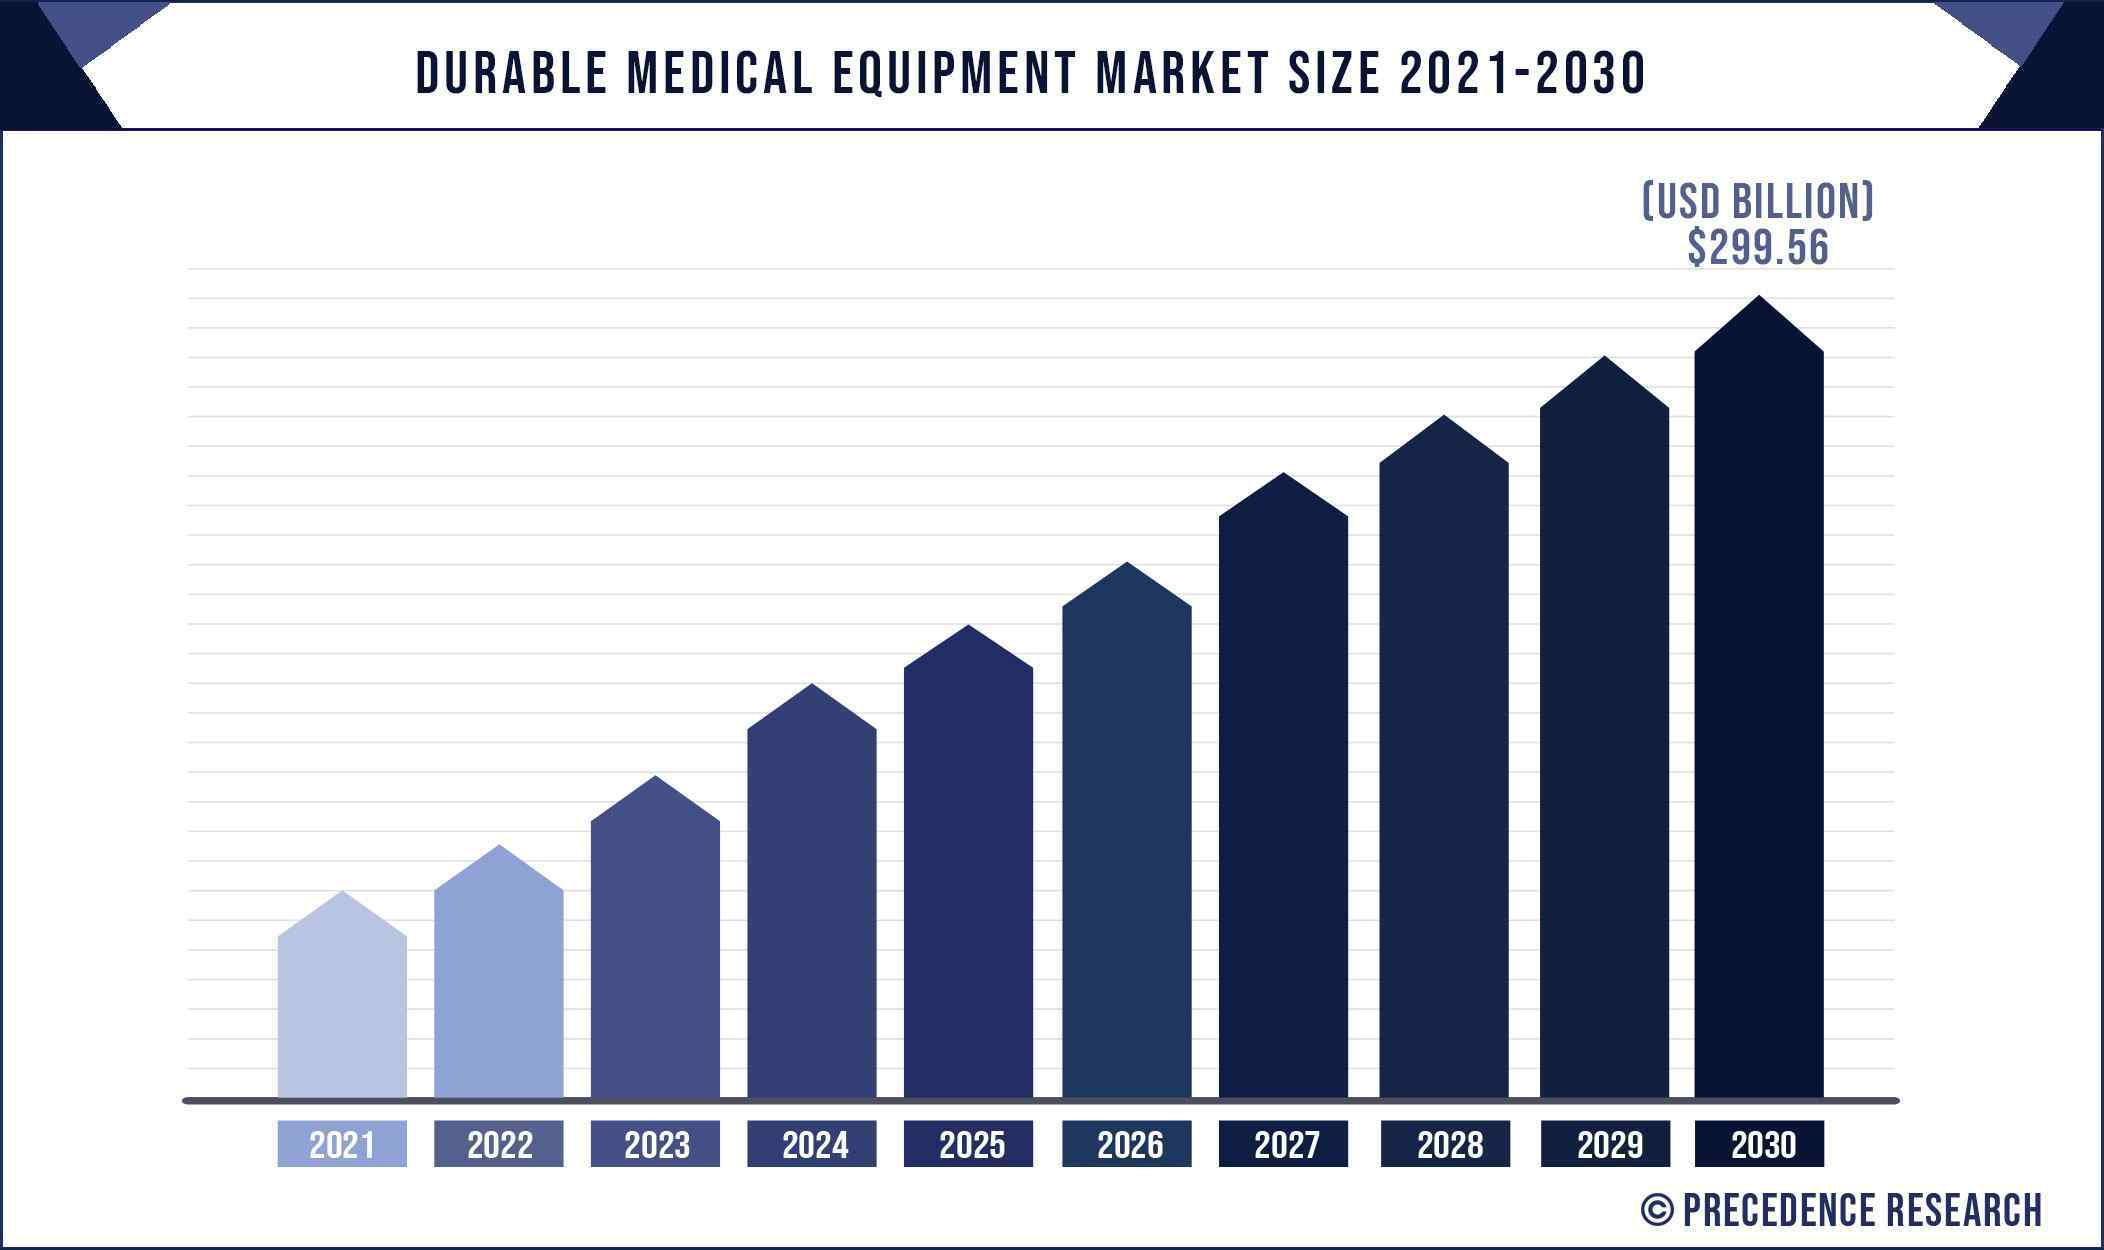 Durable Medical Equipment Size 2021 to 2030